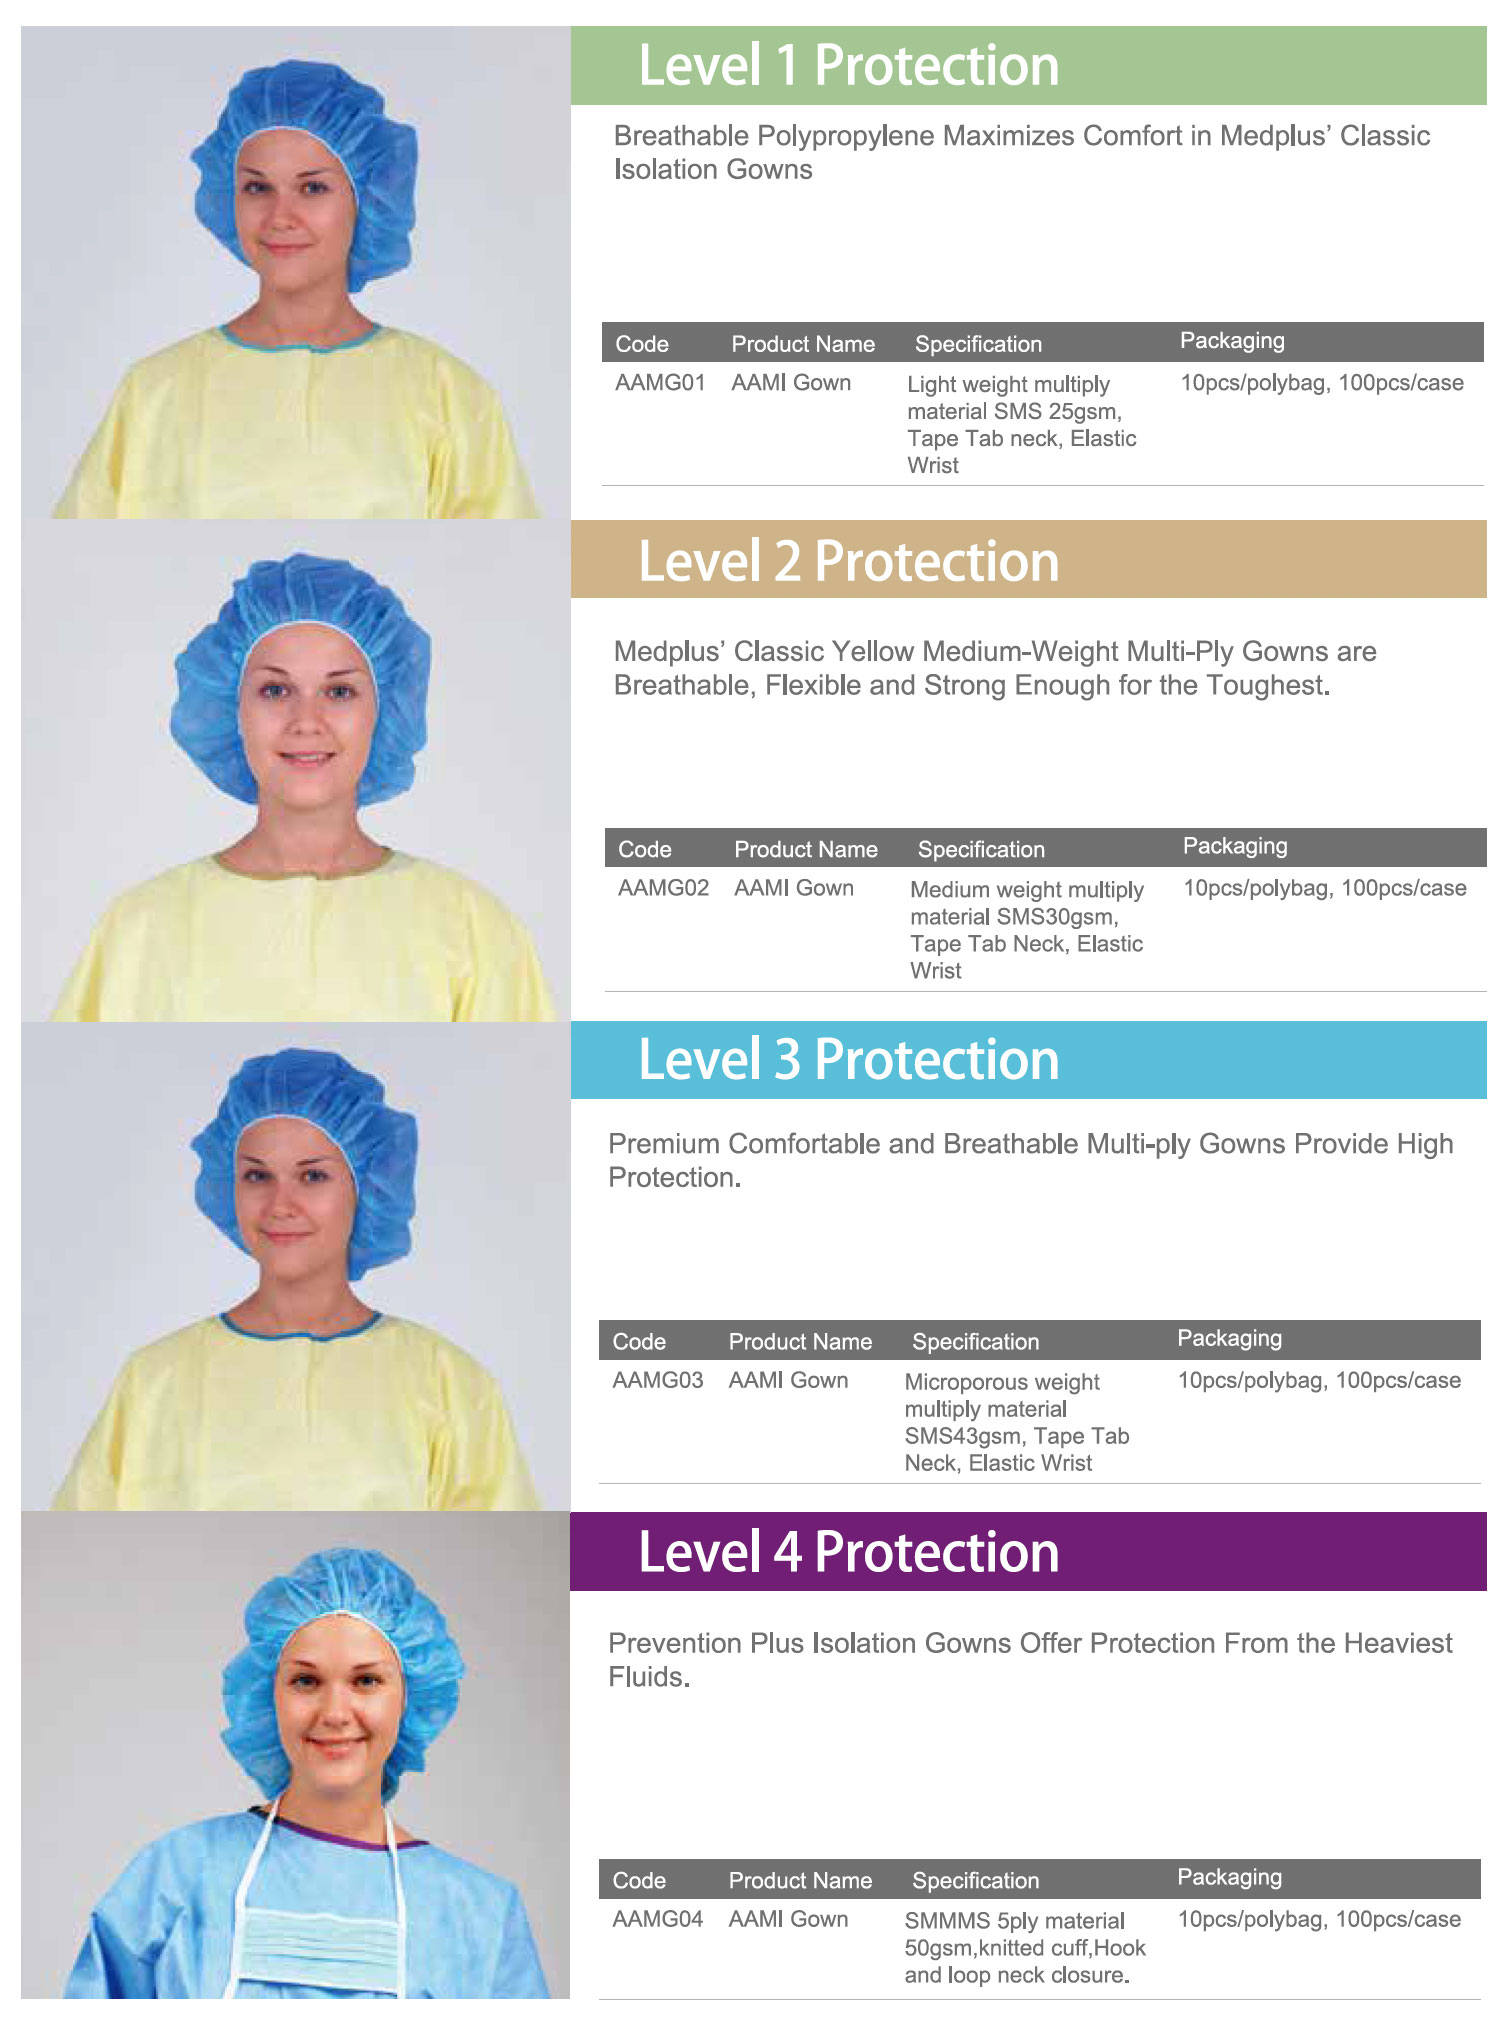 AAMI Approved Gowns | Protective Apparels - Medical Group Care